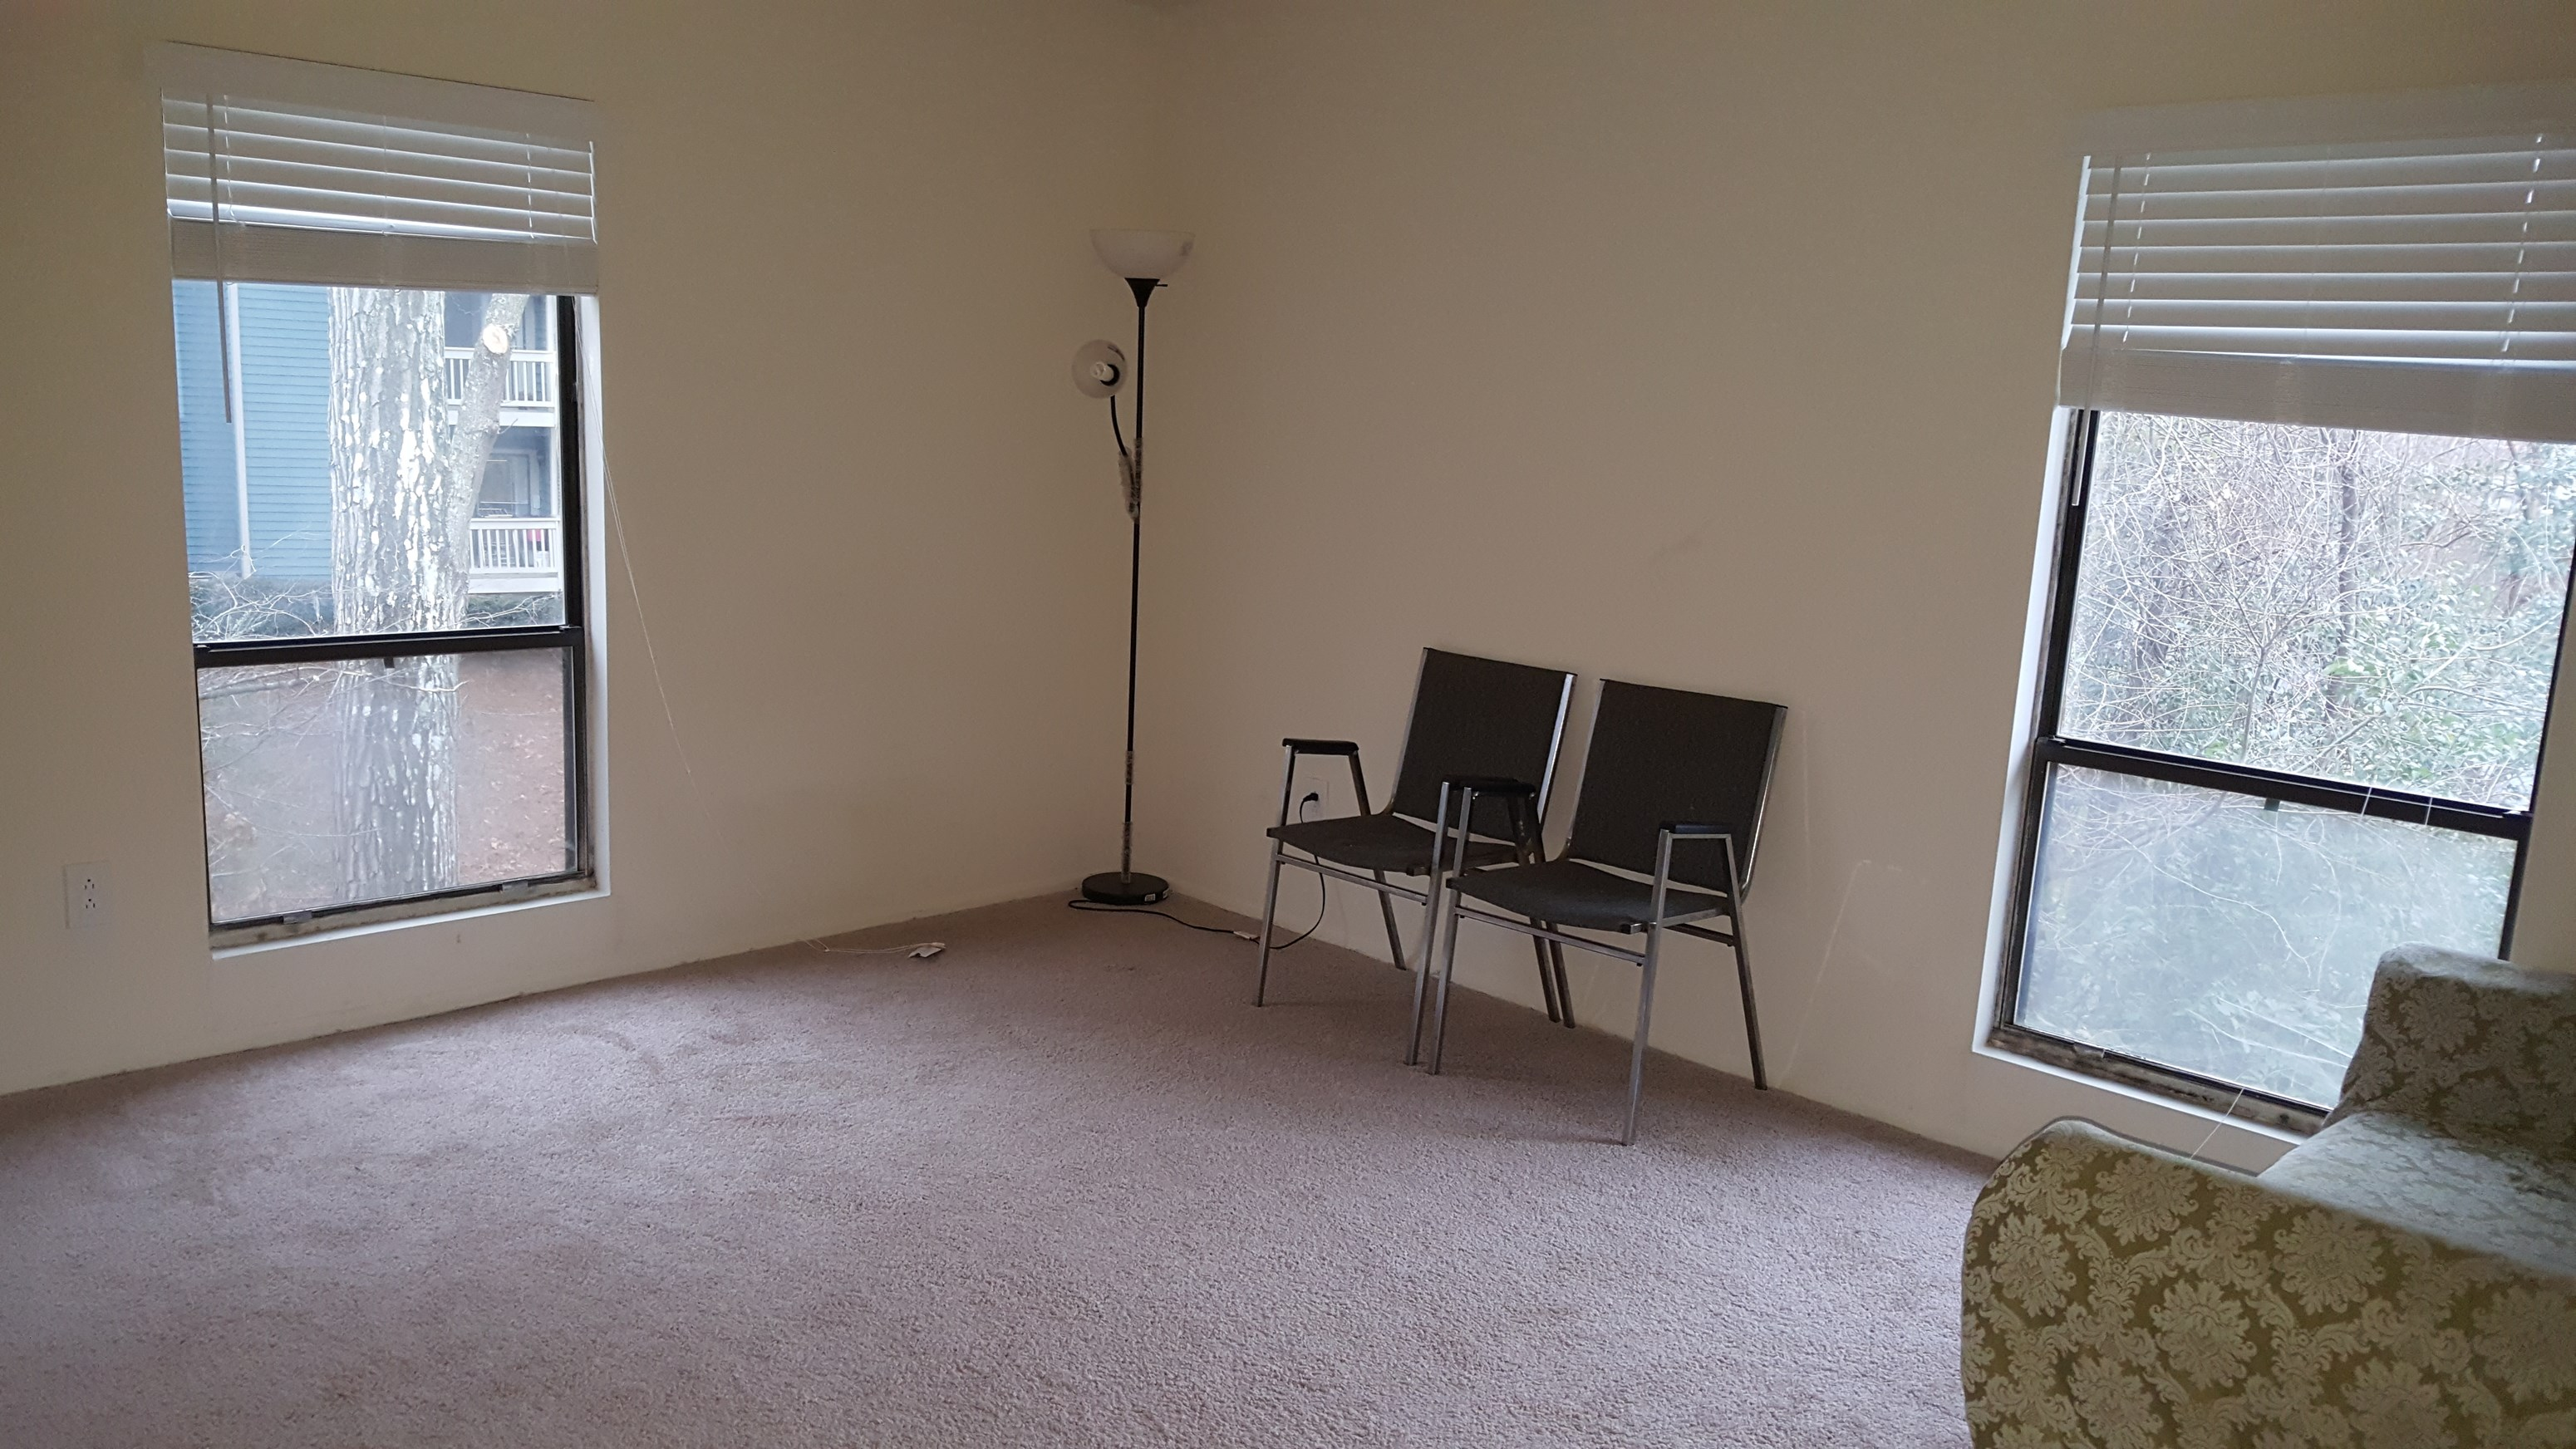 Private Rooms For Rent Charlotte Nc